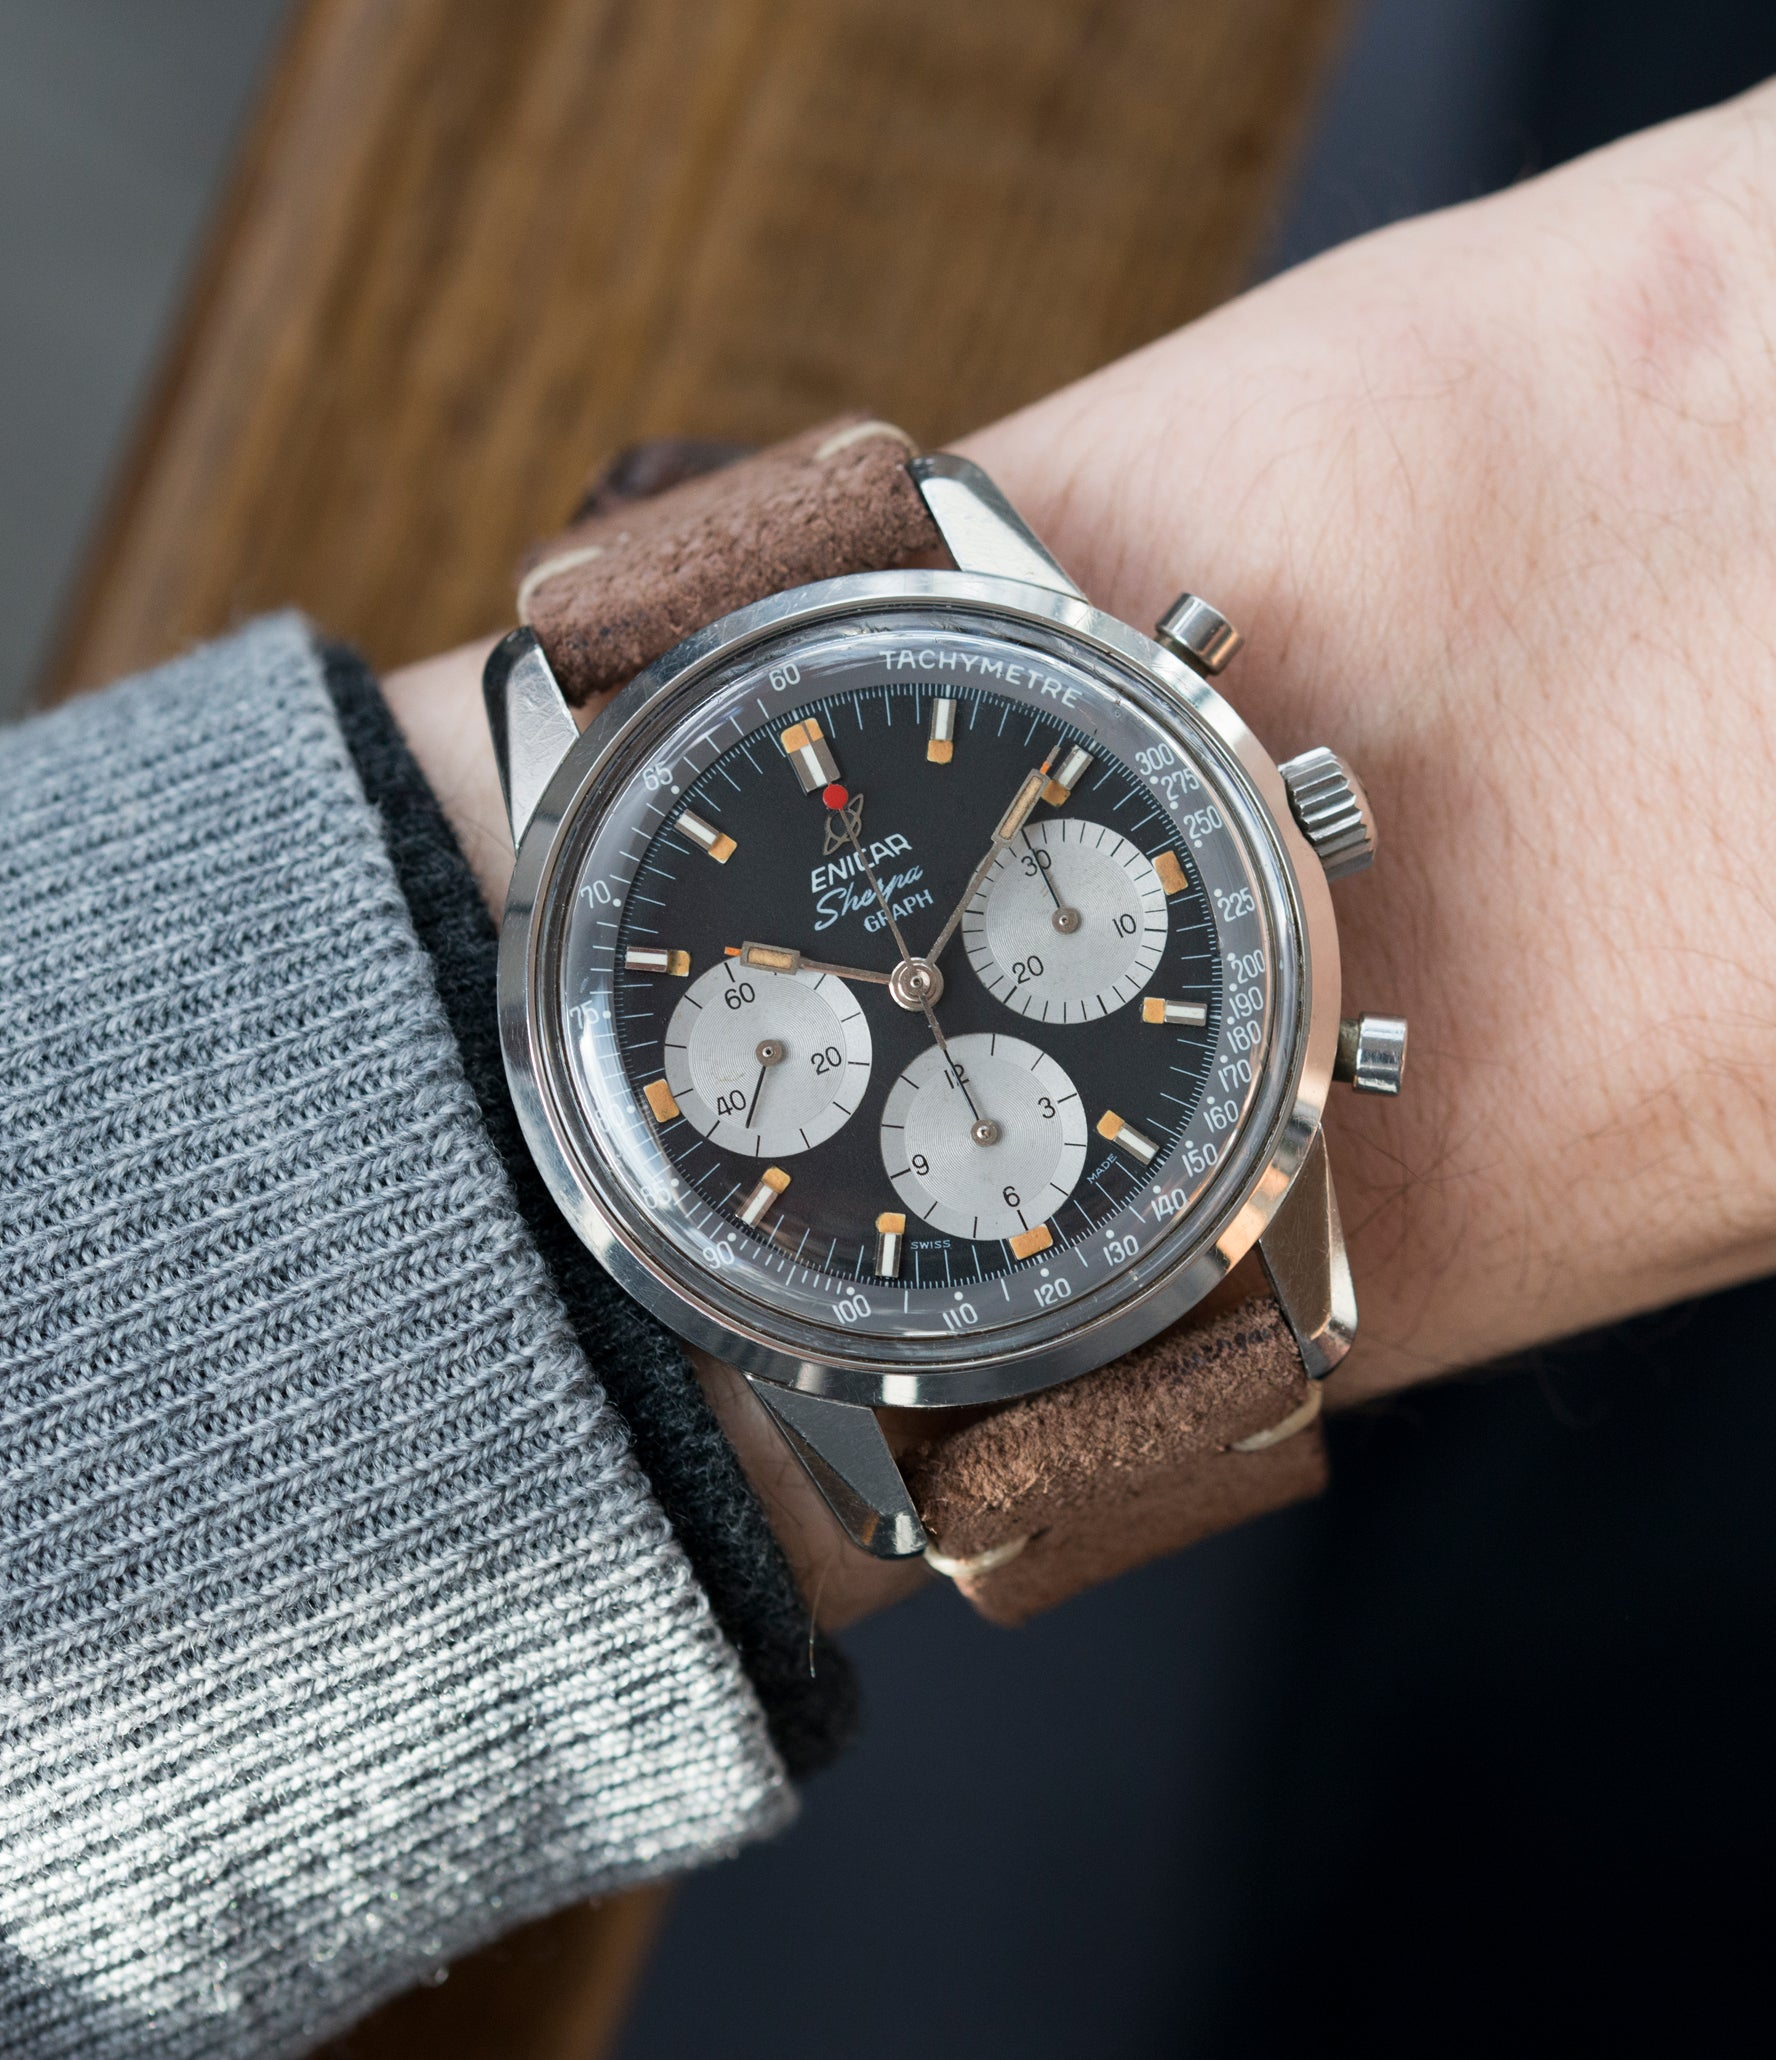 cool vintage watch Jim Clark's Sherpa Graph 300 Enicar MKIII black dial steel vintage chronograph watch at A Collected Man London UK specialist of rare watches